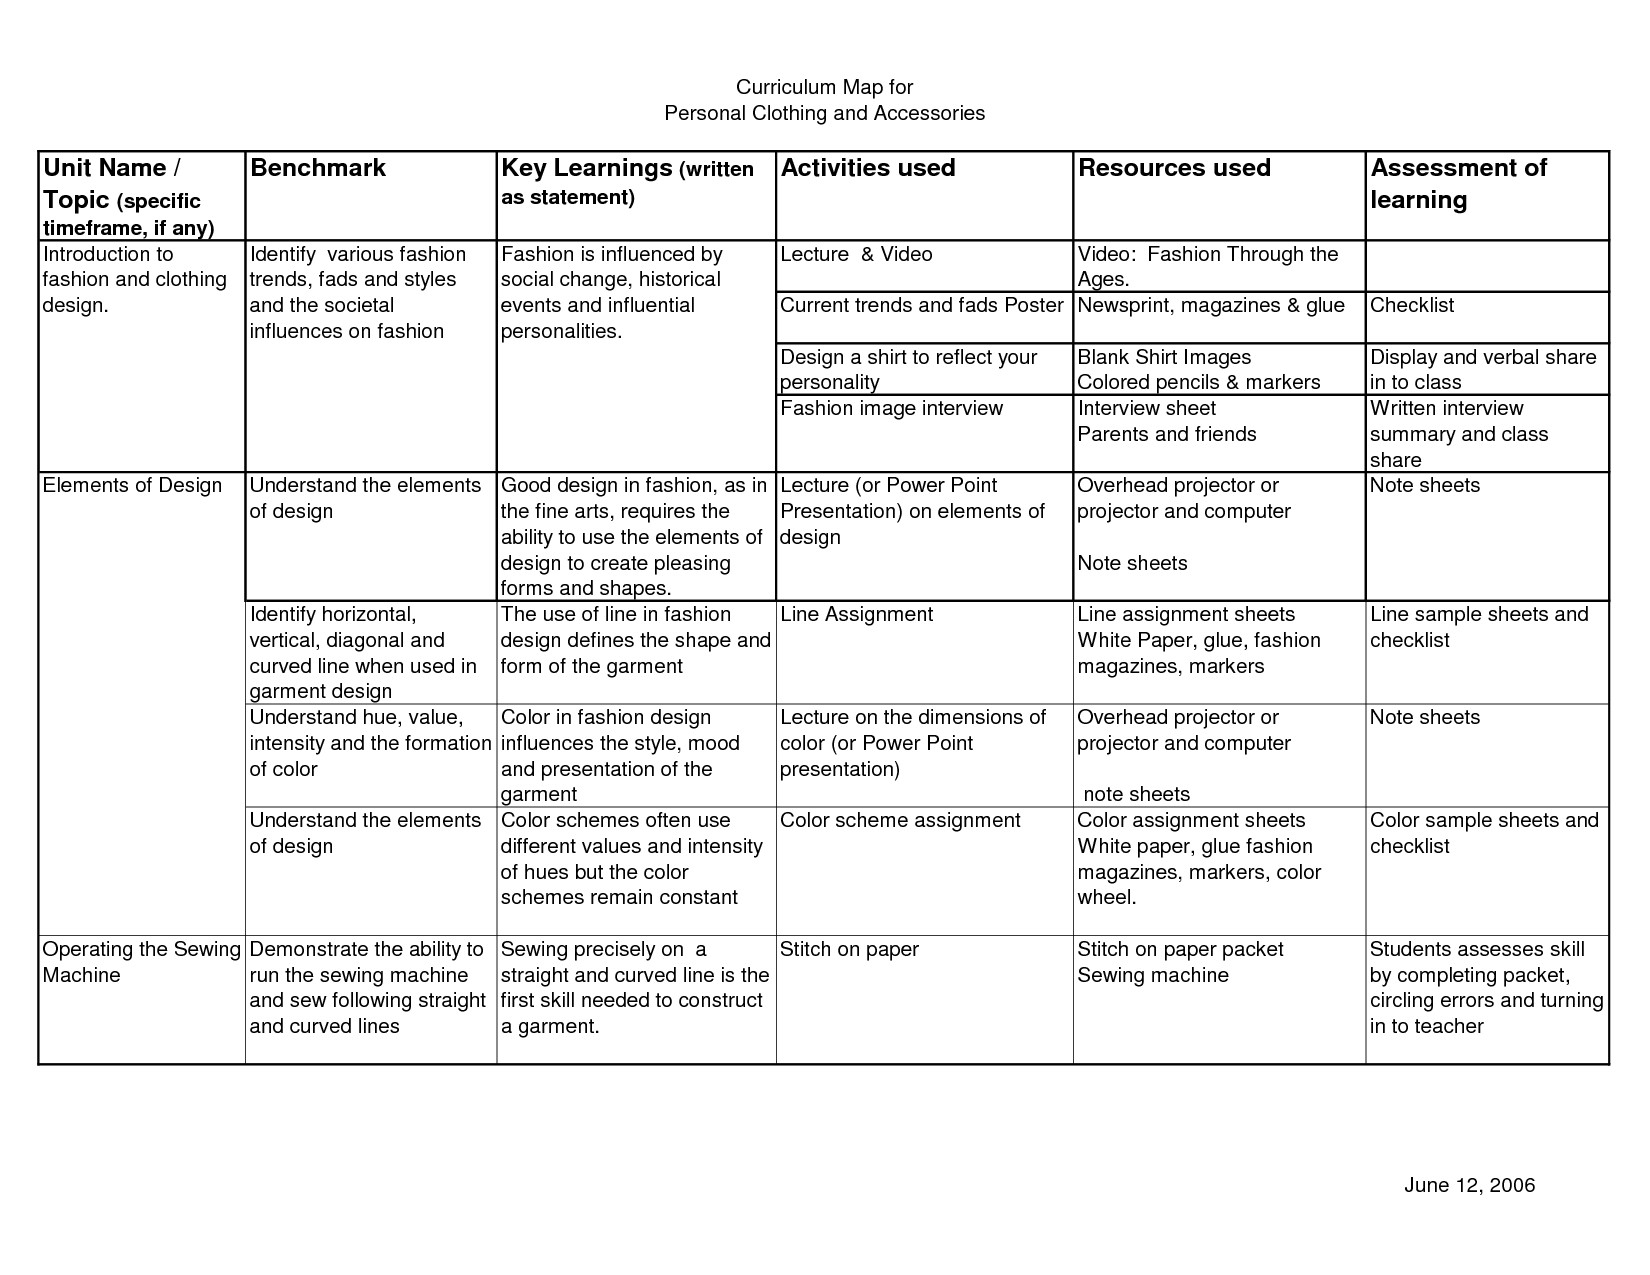 Blank Curriculum Map Template  Blank Color Wheel Worksheets In Blank Syllabus Template